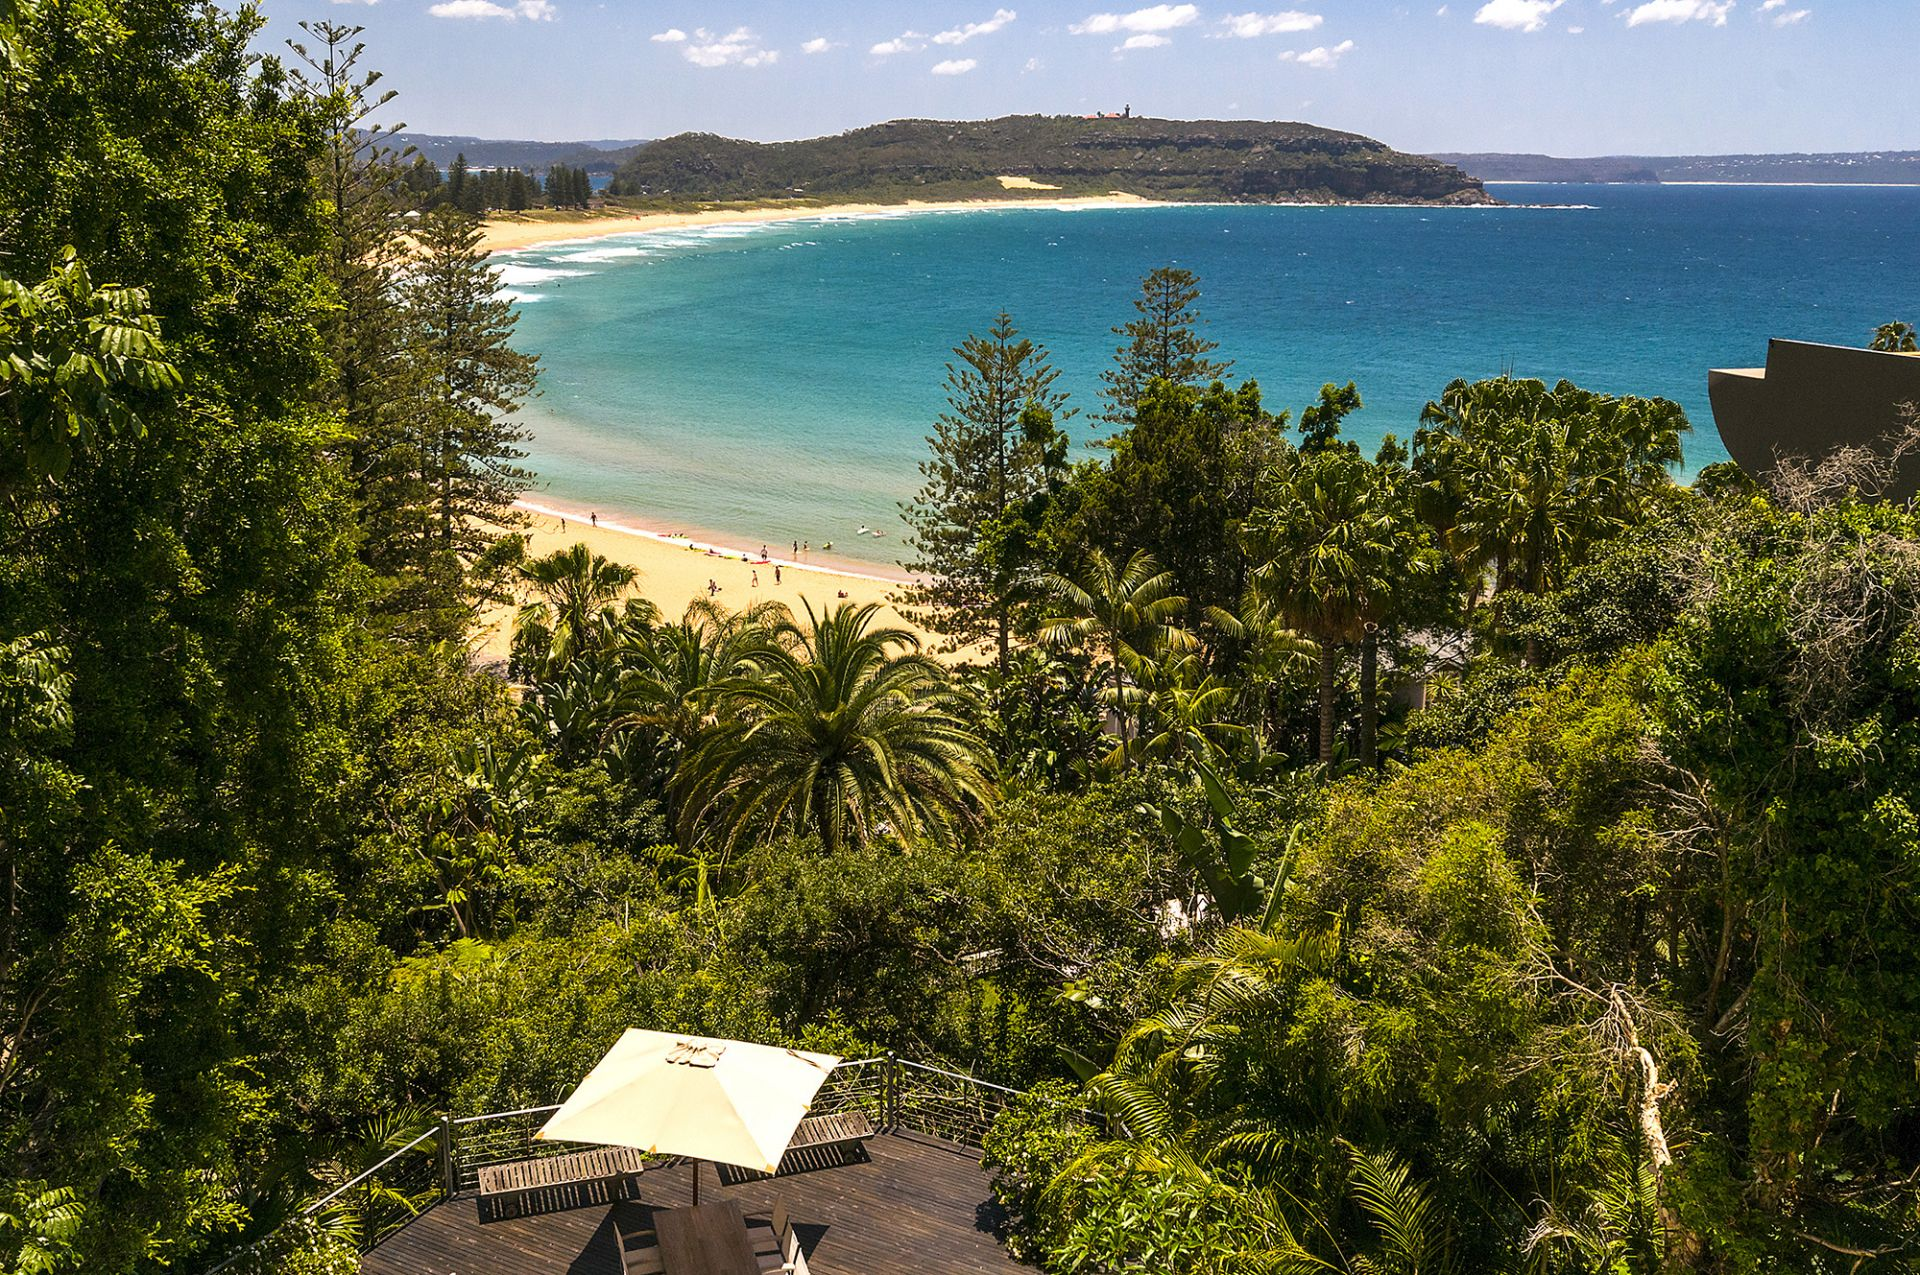 All offers invited - Breathtaking due-north views 28 Florida Road Palm Beach, New South Wales,2108 Australia